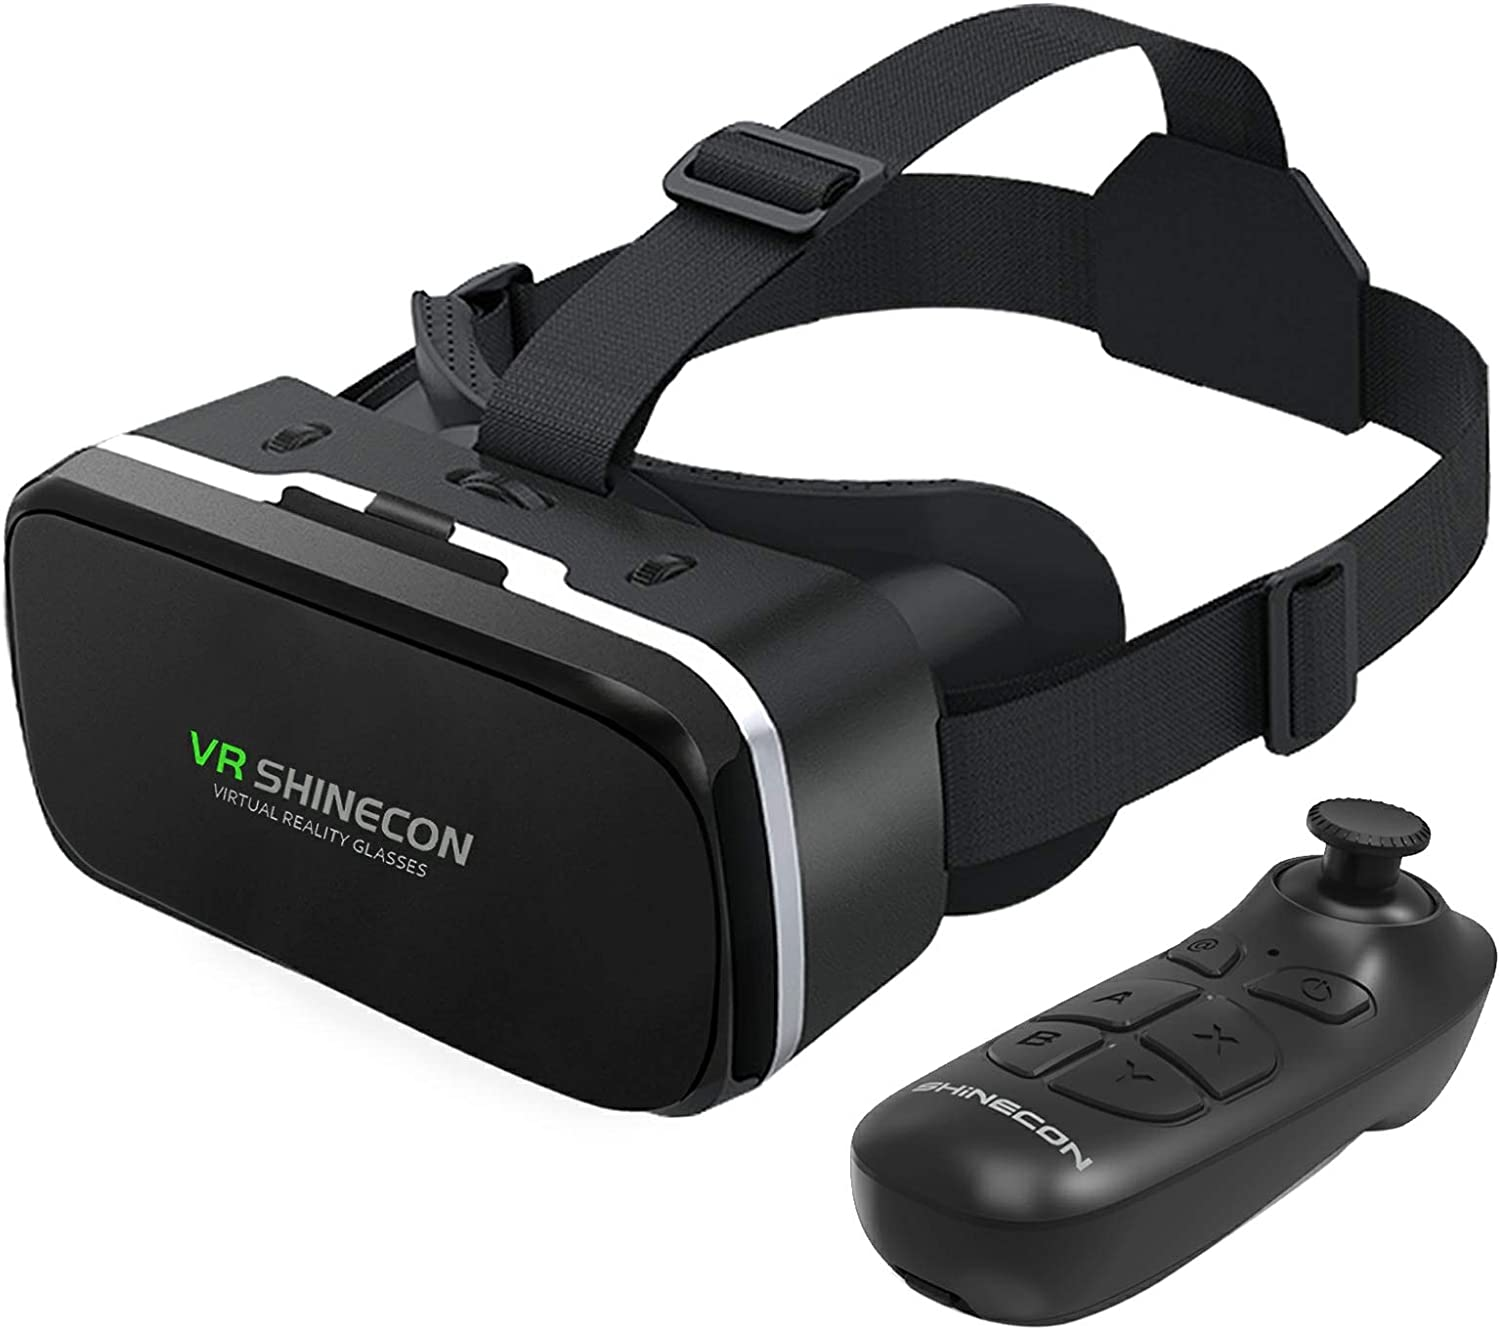 VR SHINECON Headset with Remote Controller 3D Glasses Goggles HD Virtual Reality Headset Compatible with iPhone & Android Phone Eye Protected Soft & Comfortable Adjustable Distance for Phones 4.7-6.53